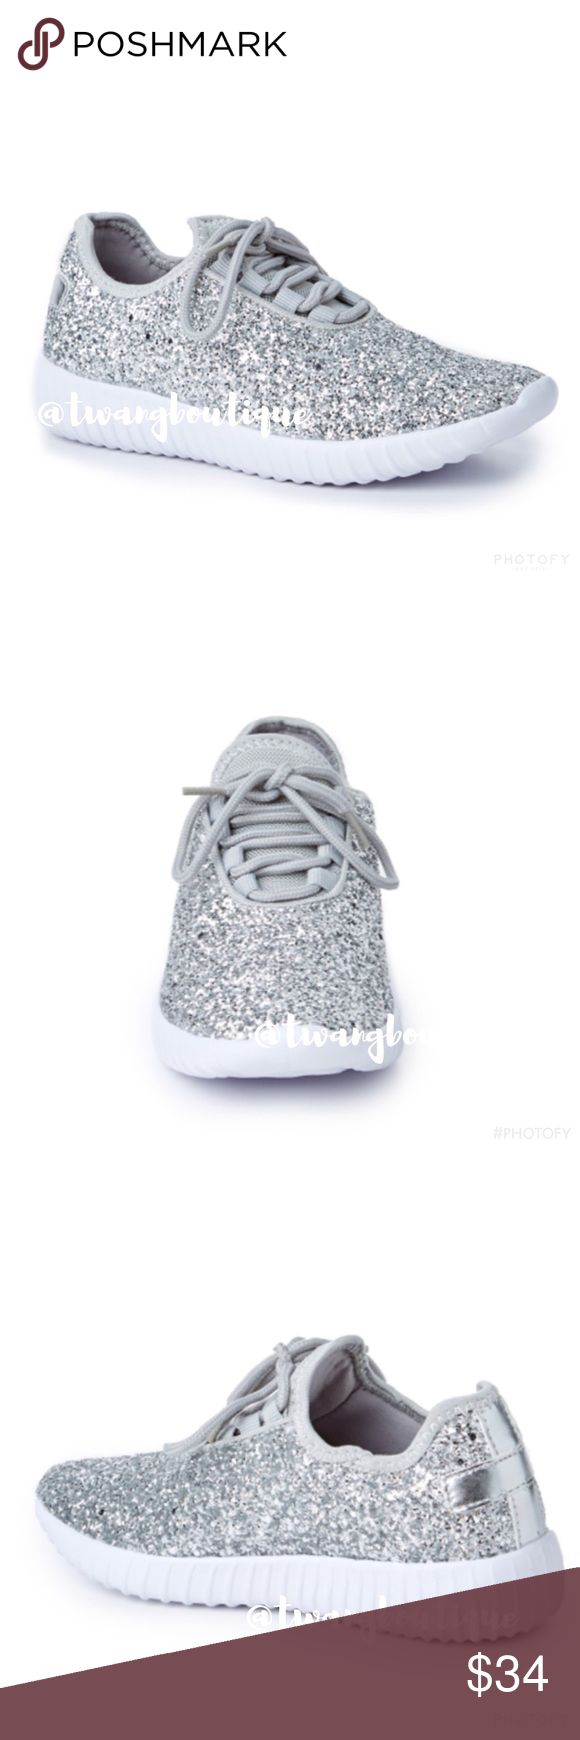 BACK << Silver Glitter Sneakers Shoes > So sparkly! Sparkle, shine and stand out in these shoes! These babies are comfy and will make any outfit look so glam! Fit true to size. Available in whole sizes only, so if you are a half size go a size up. Use these tennis shoes for athletic functions and look fly up in that gym! Or wear them on a casual day around town and sparkle! Also available in silver and rose gold. Boutique Shoes